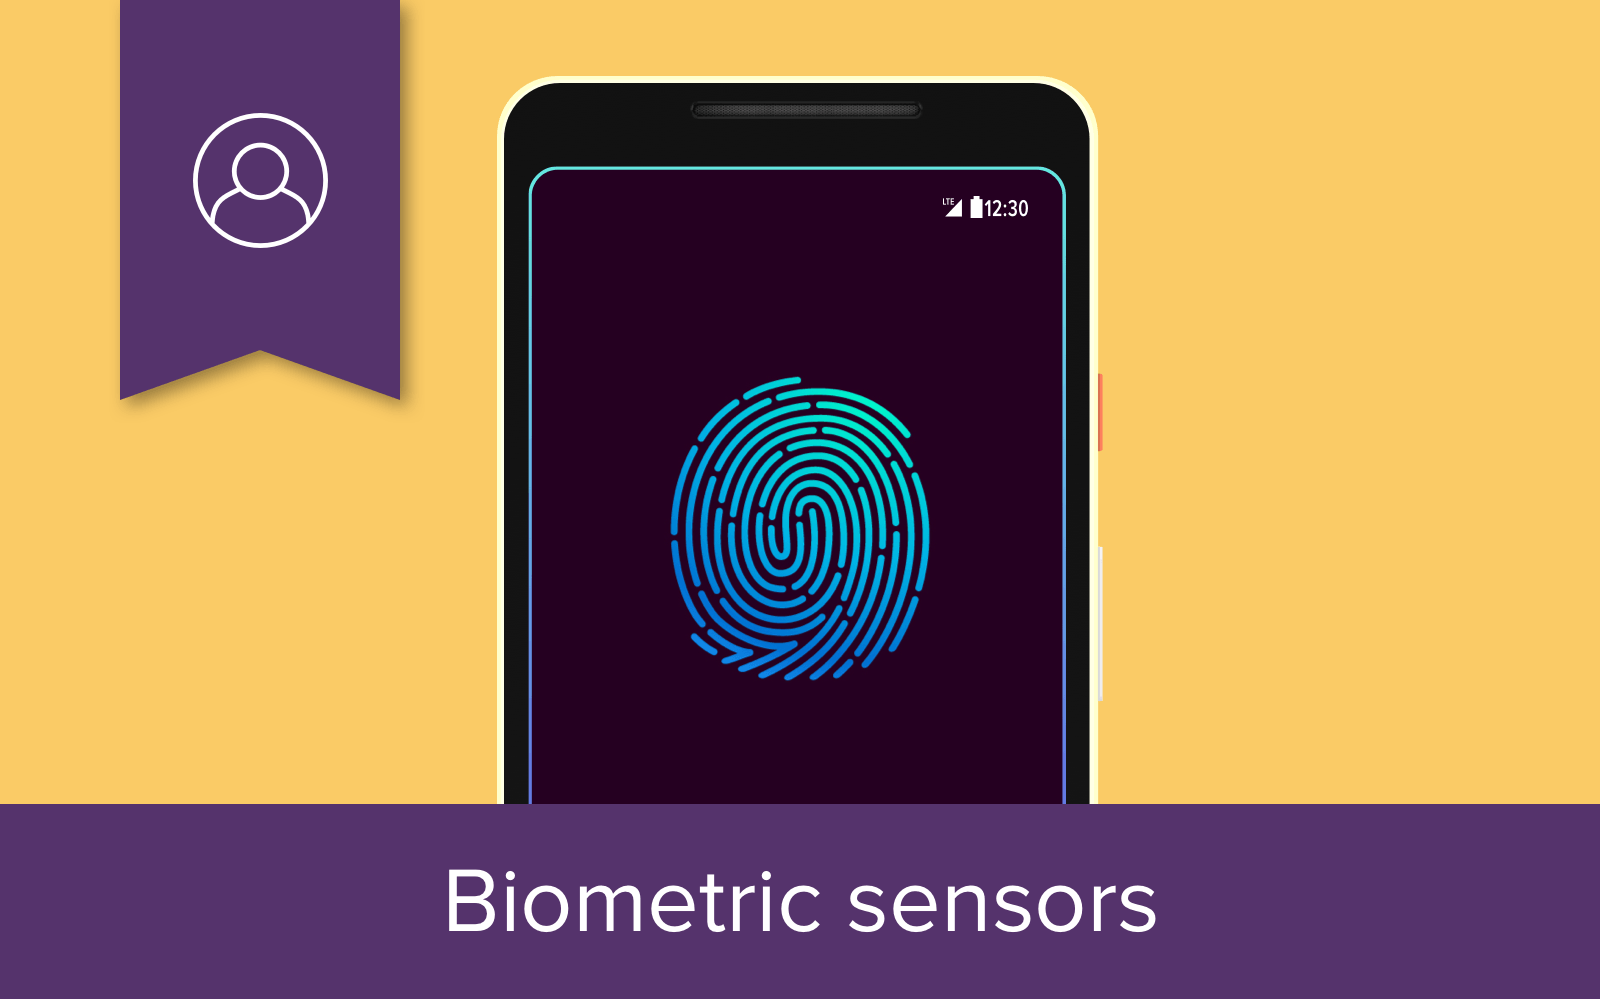 Android P 9.0: Biometric Sensors